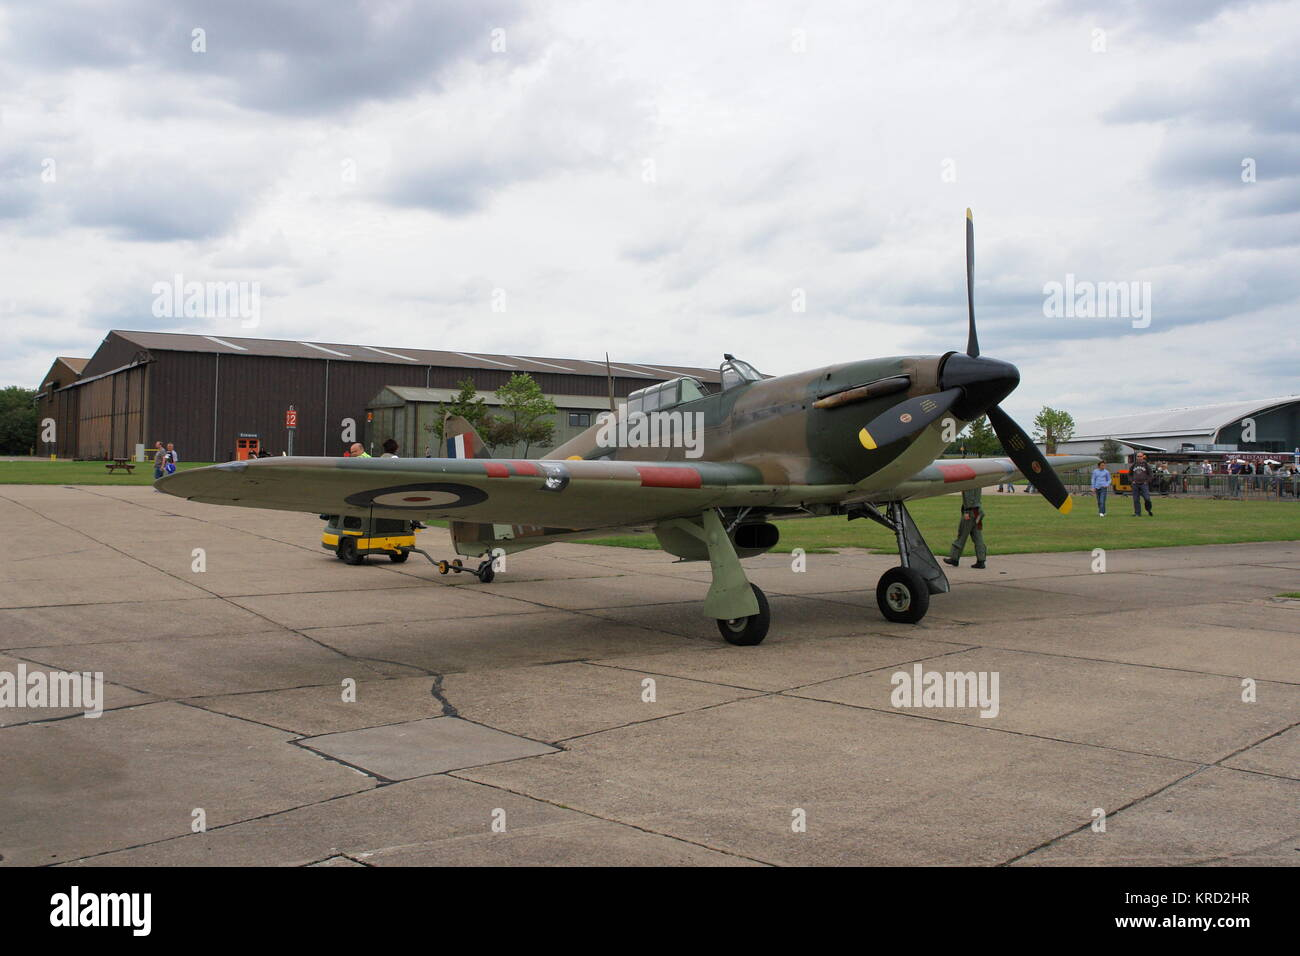 A Hurricane fighter plane, active during the Second World War, on an airfield, possibly at an air museum.      Date: - Stock Image